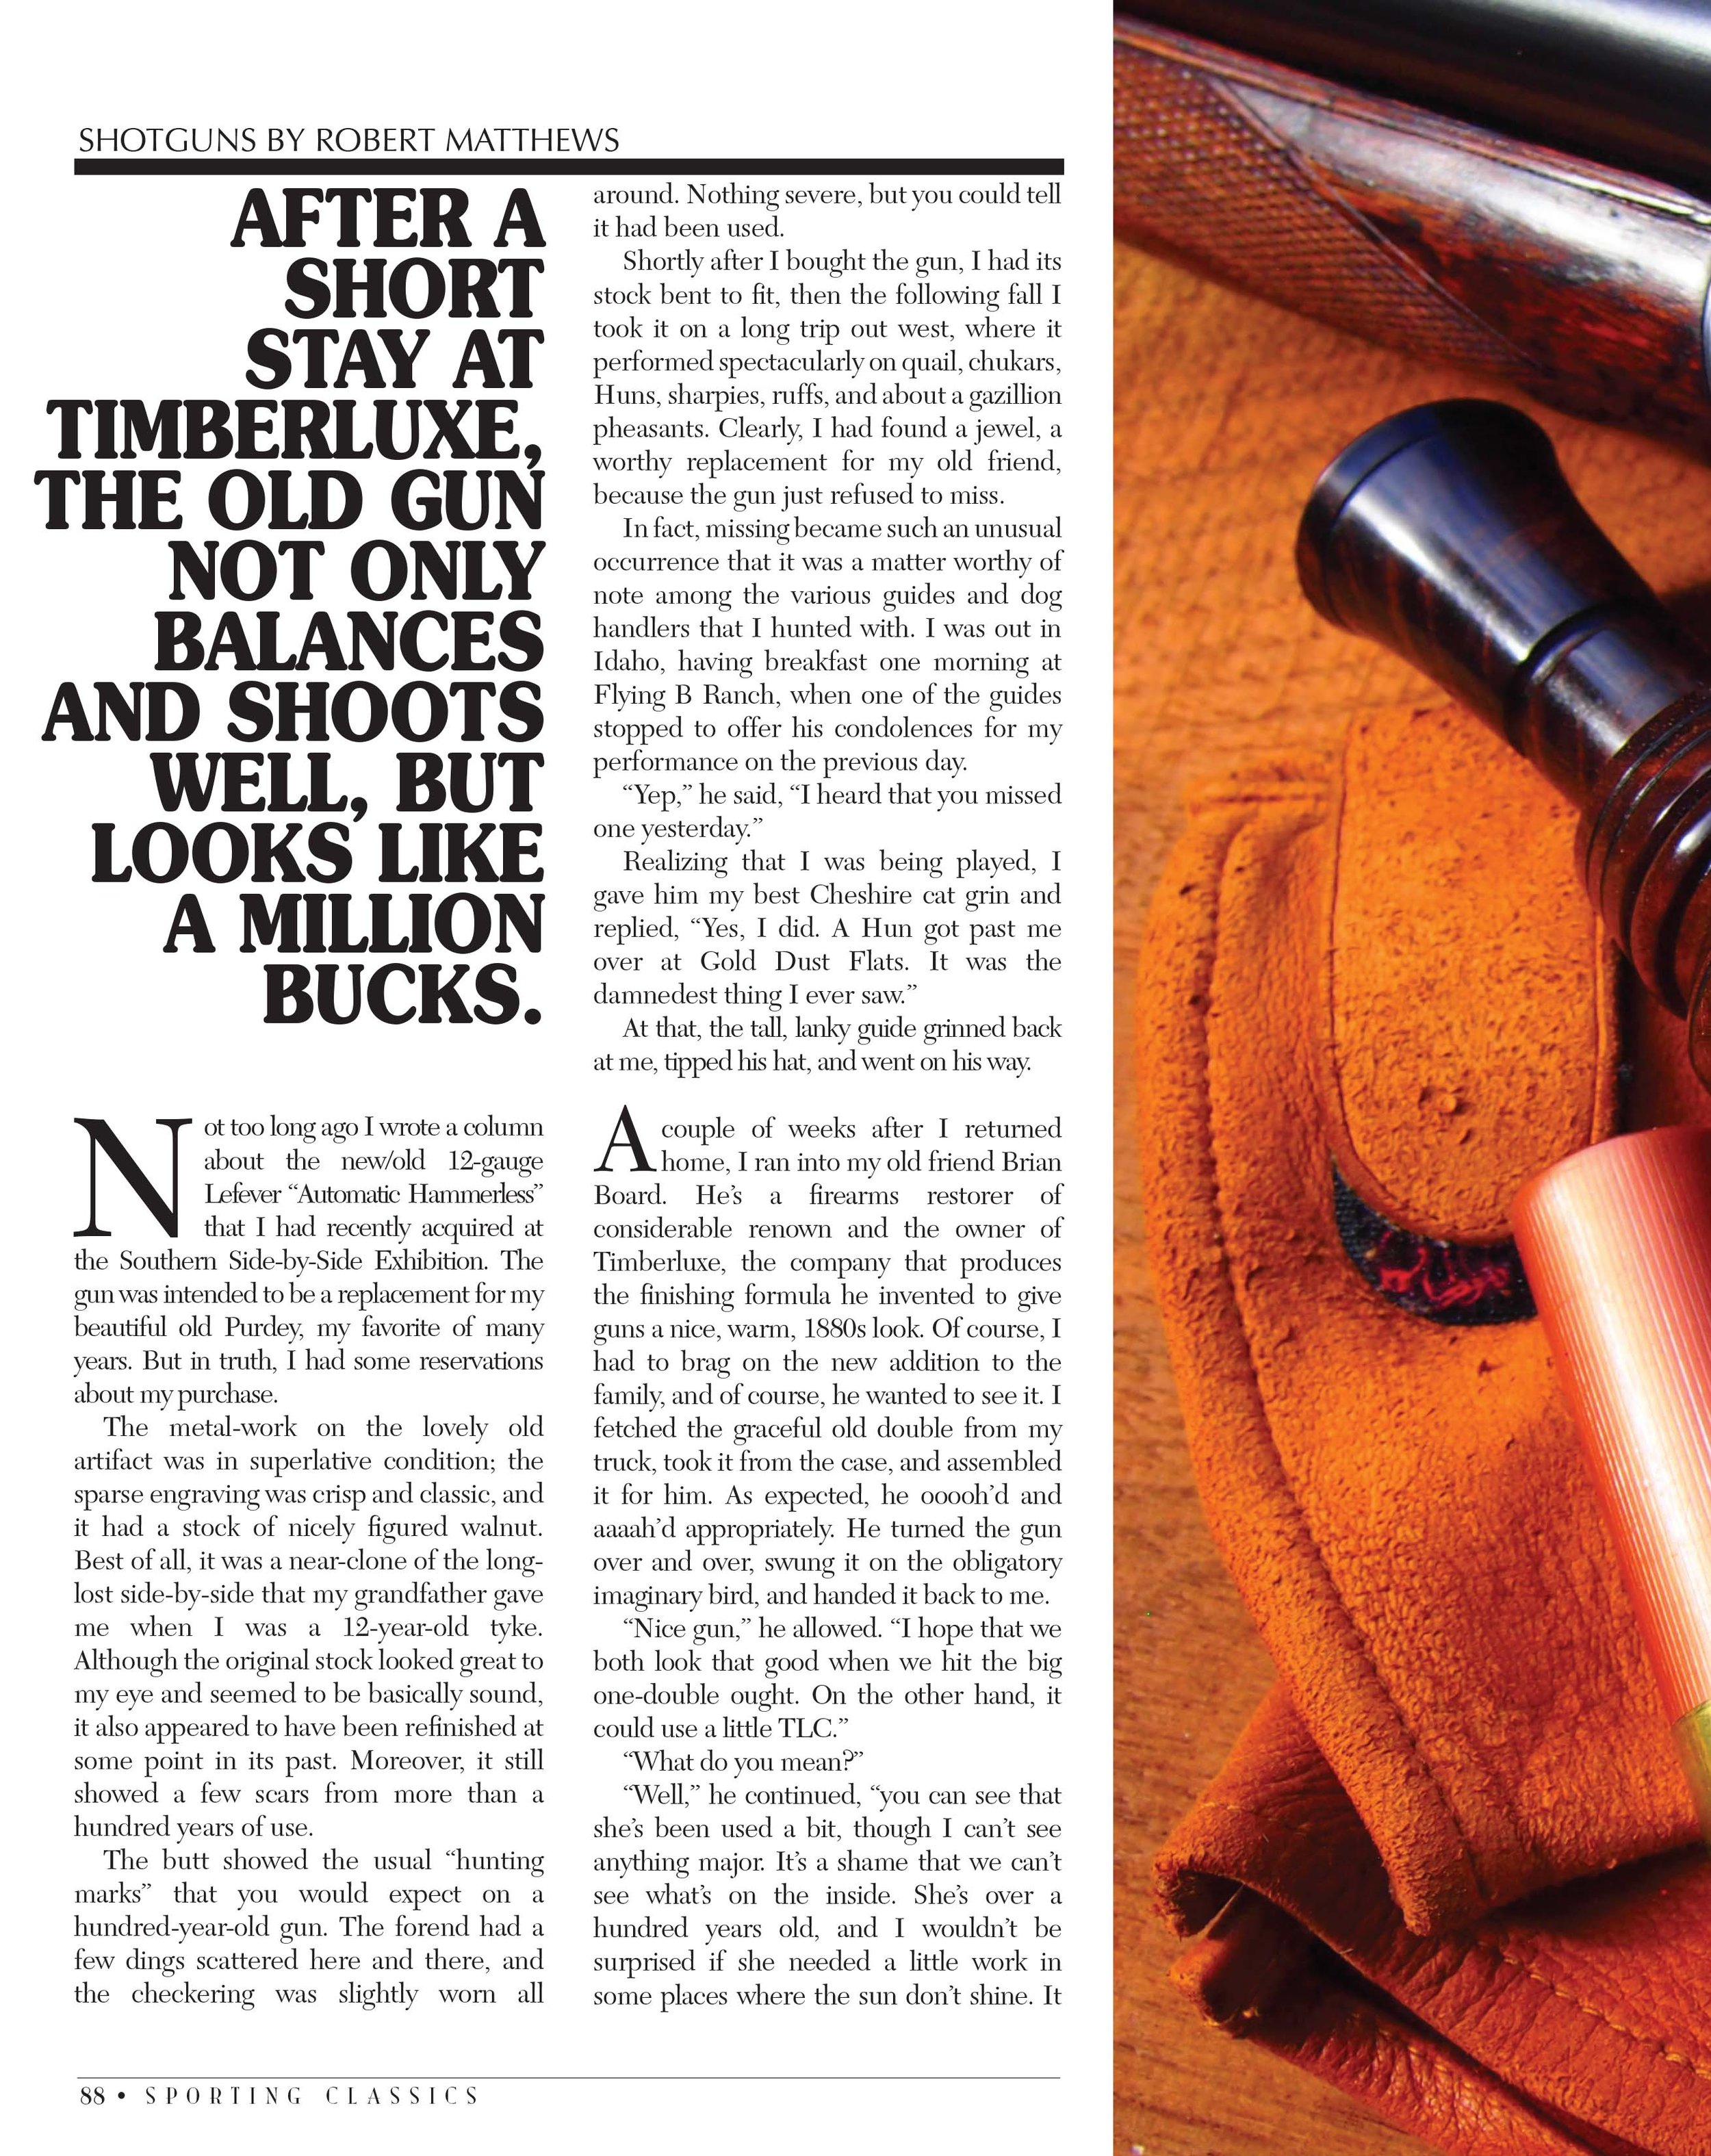 Sporting Classics Pages from 2017SO-1-2.jpg